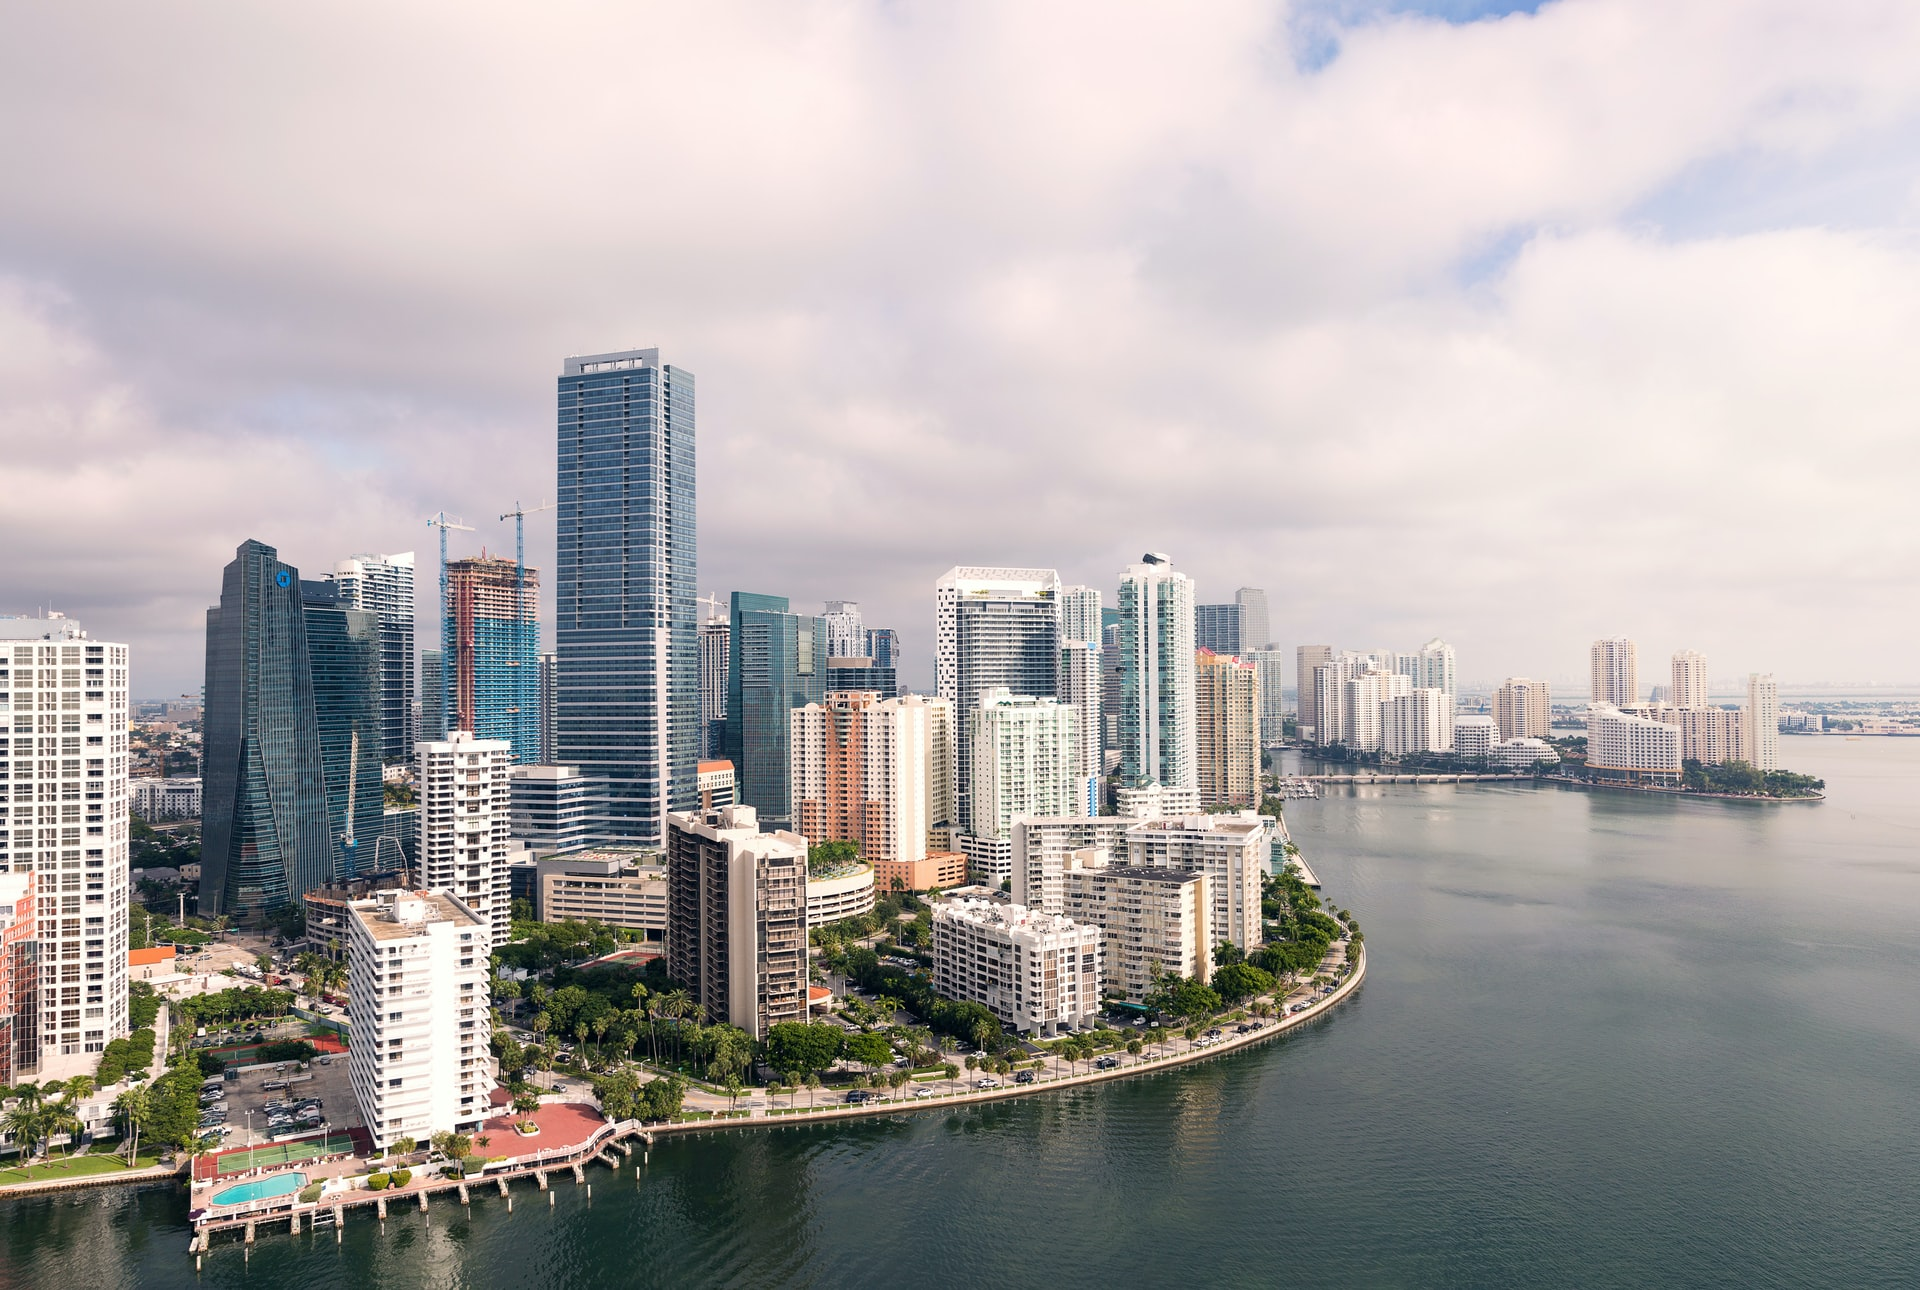 An image of Miami, a good reason for moving from Seattle to Miami is the sunshine